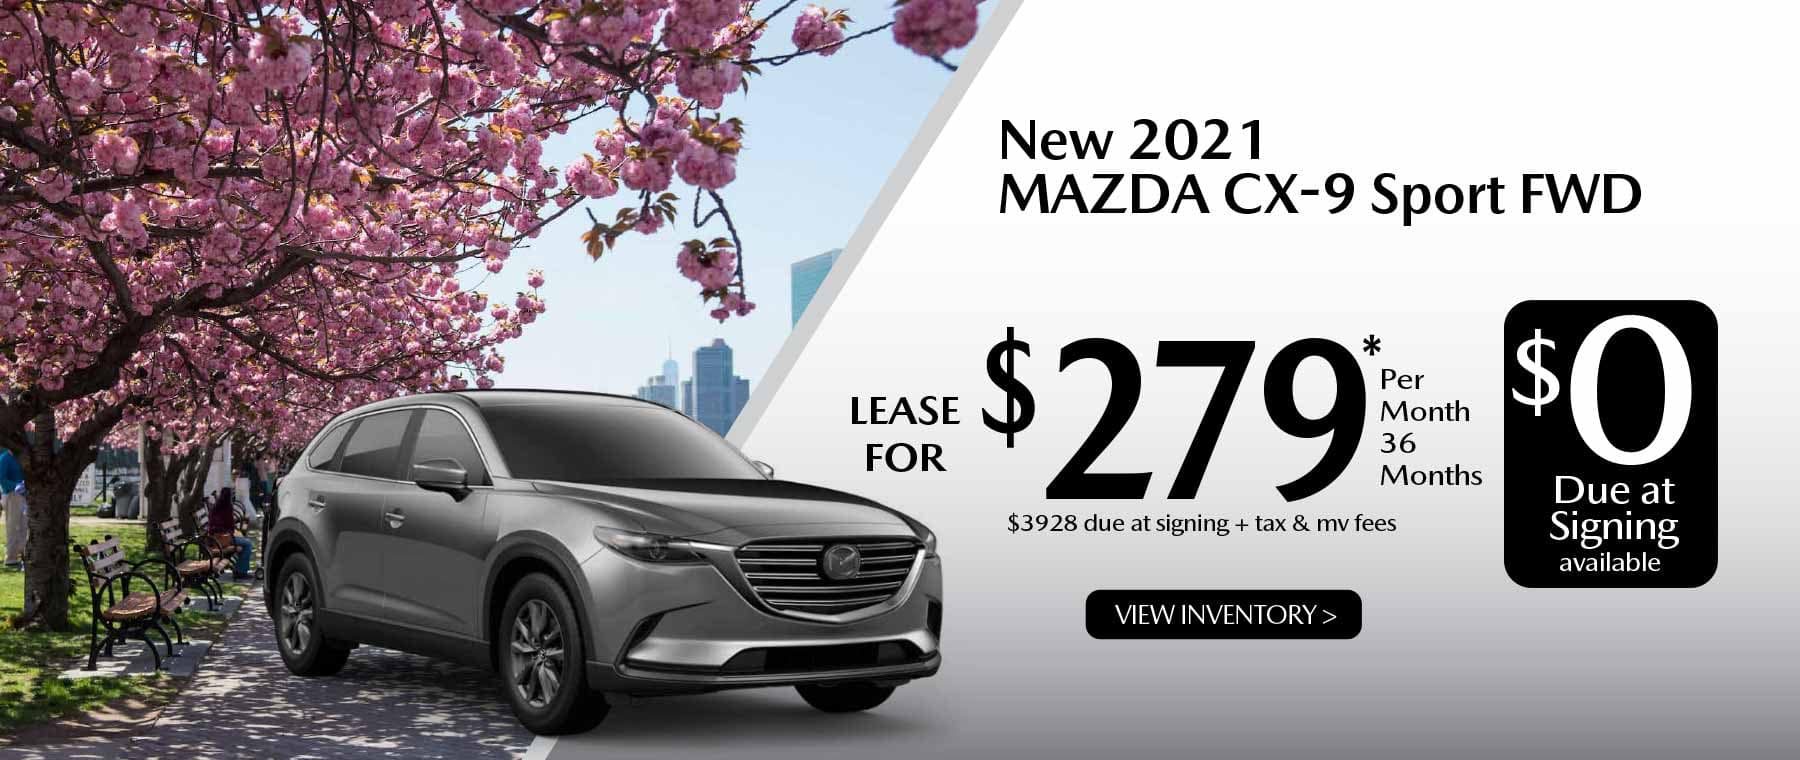 05hi CX-9 New Lease Special Offer Garden City Mazda NY